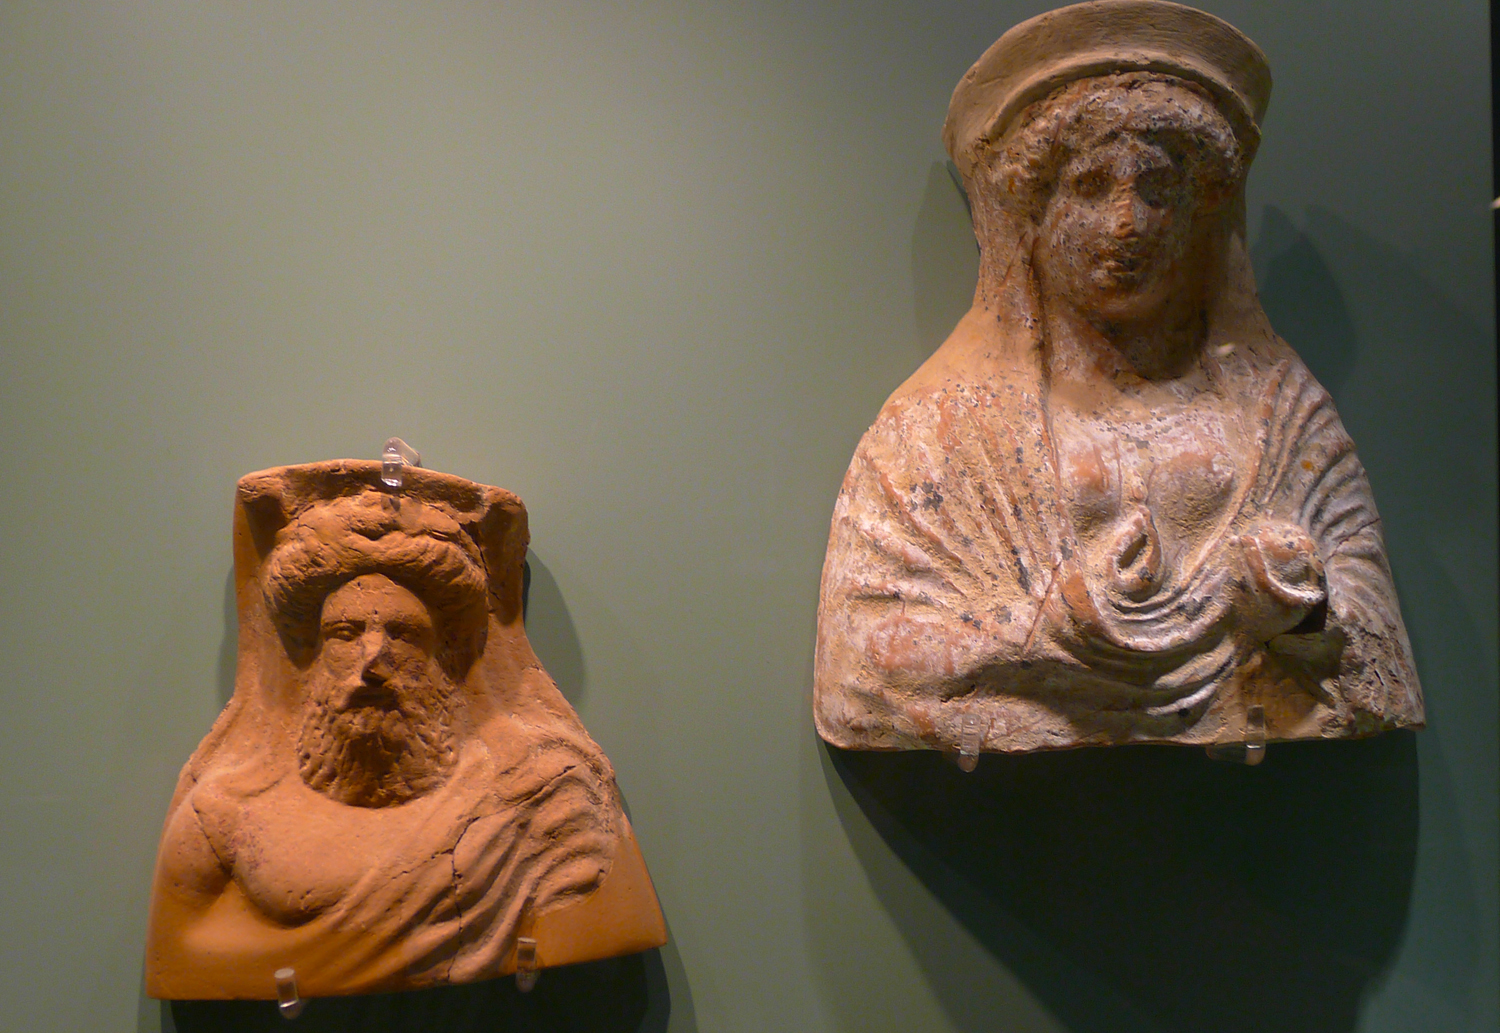 These sculptures were made a thousand years before the golden age in Greece